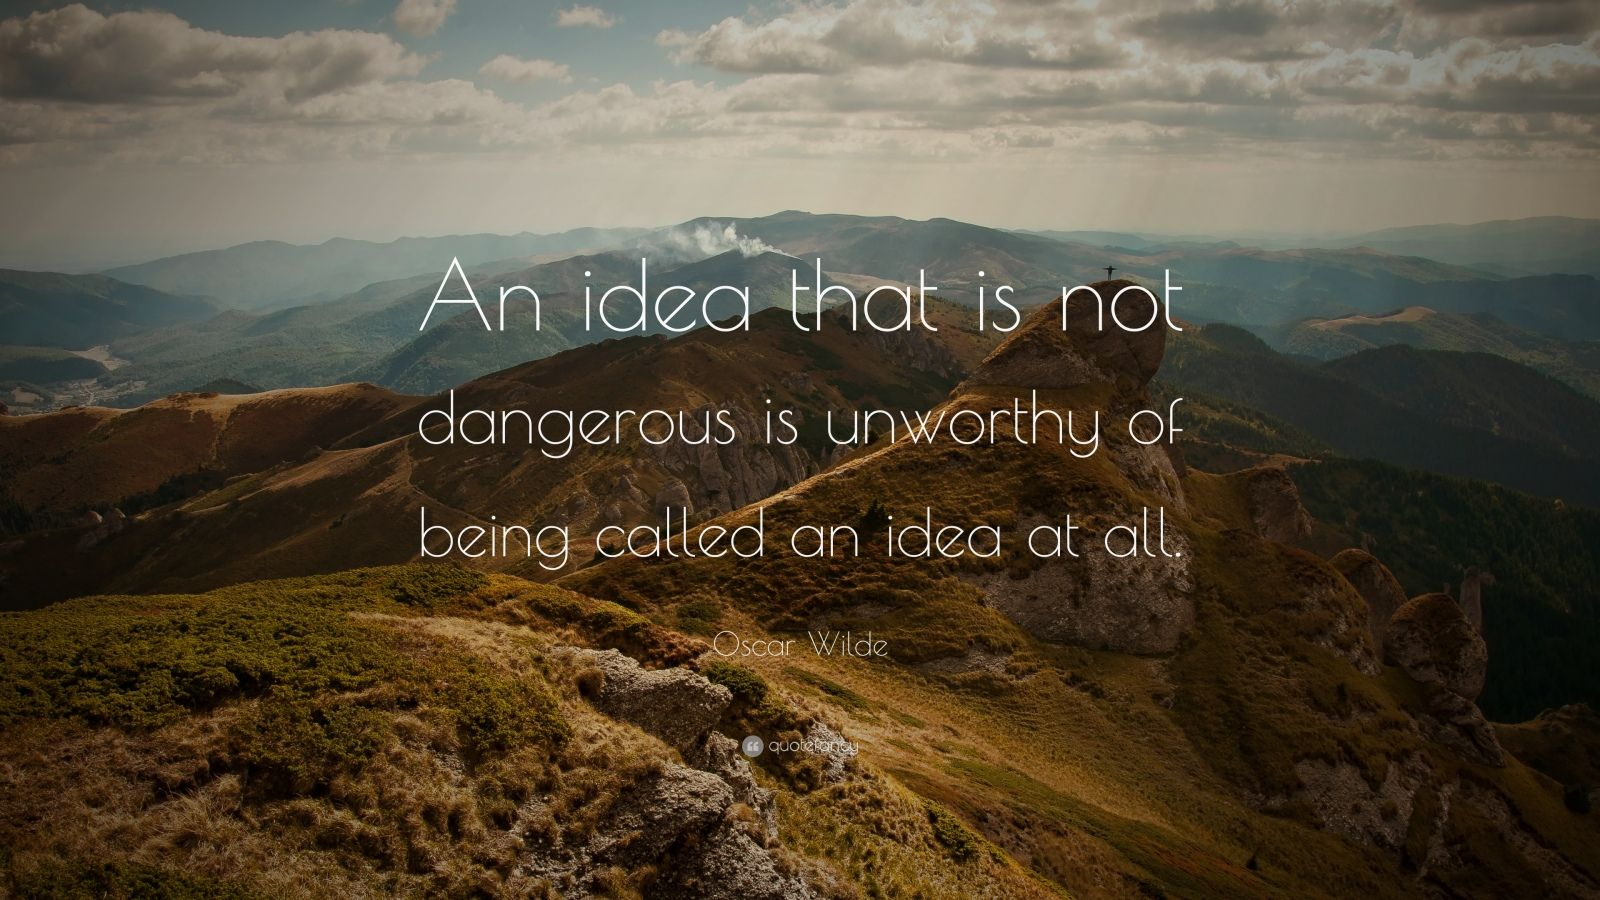 oscar wilde quotes quotefancy oscar wilde quote an idea that is not dangerous is unworthy of being called